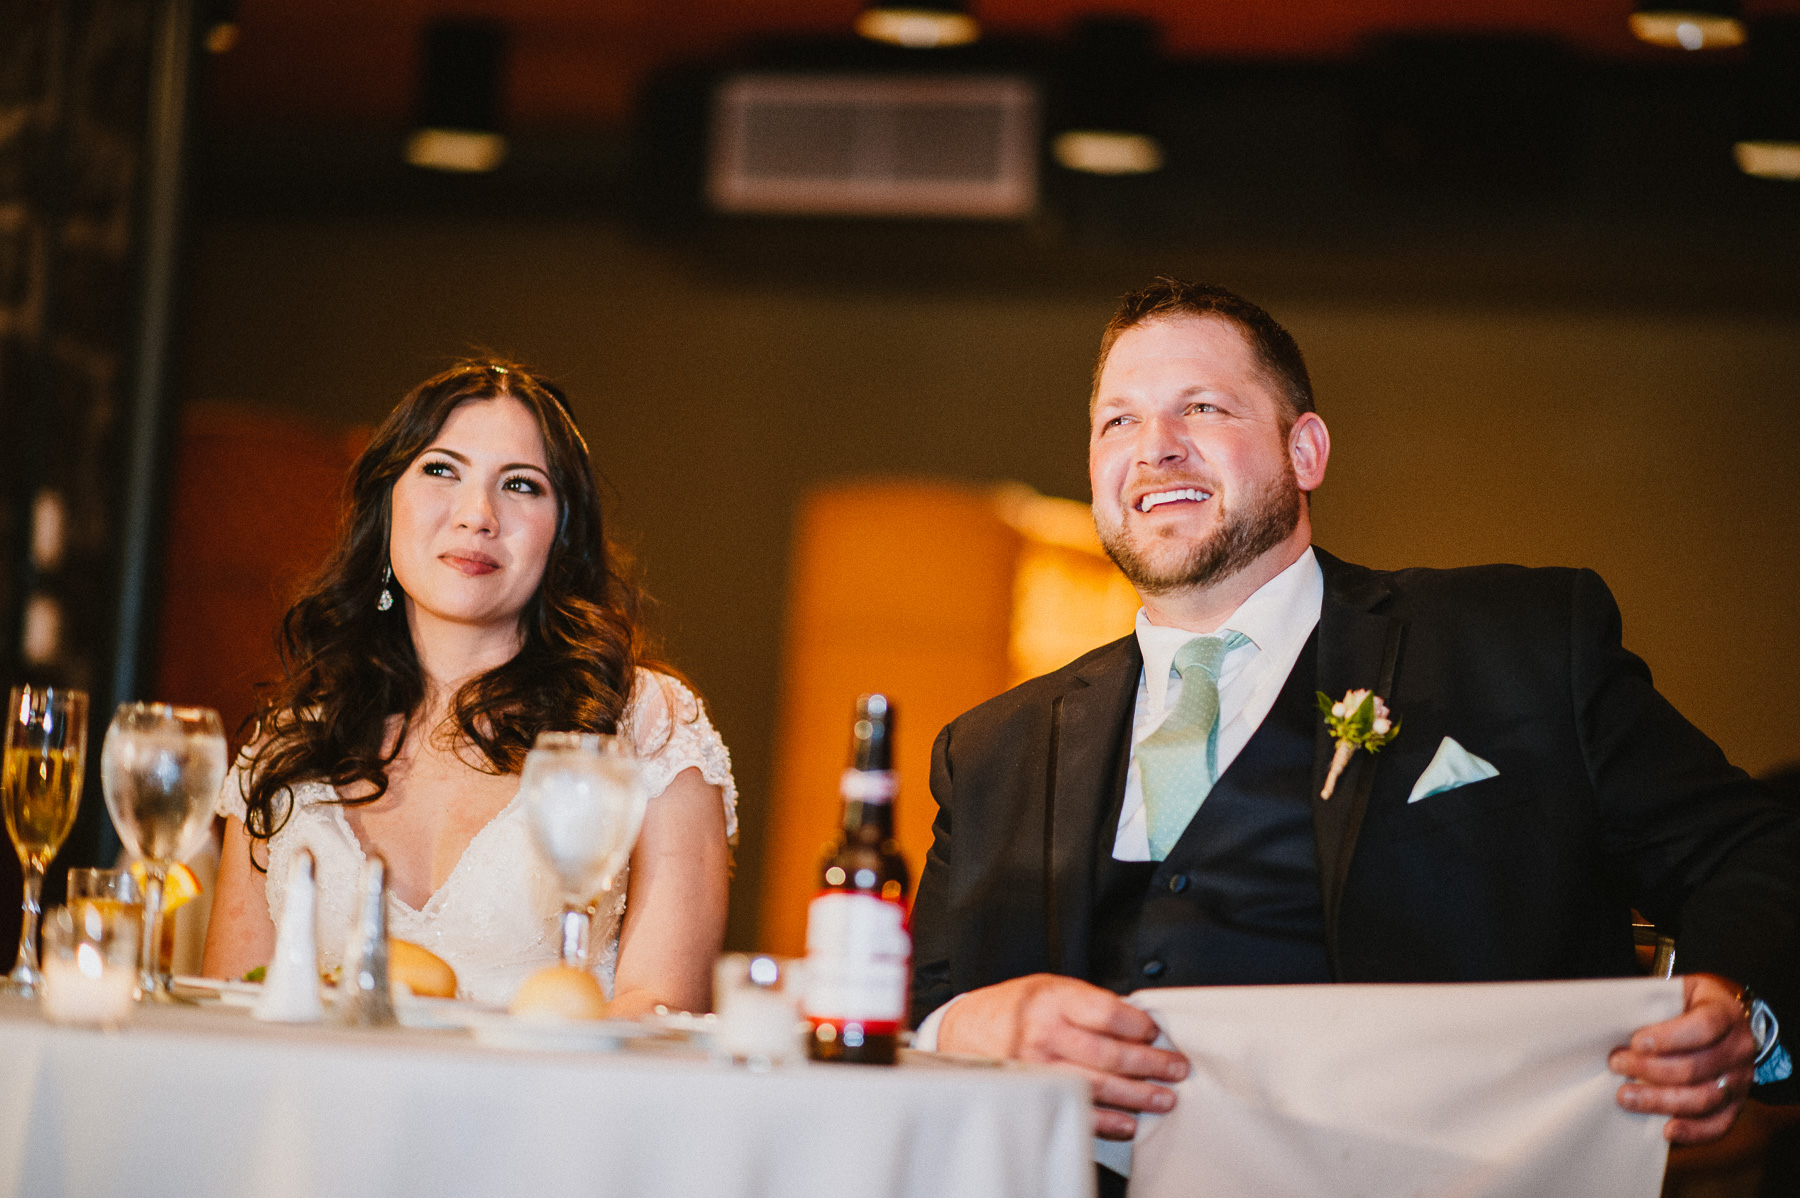 The_Carriage_House_at_Rockwood_Park_wedding_photo085.jpg